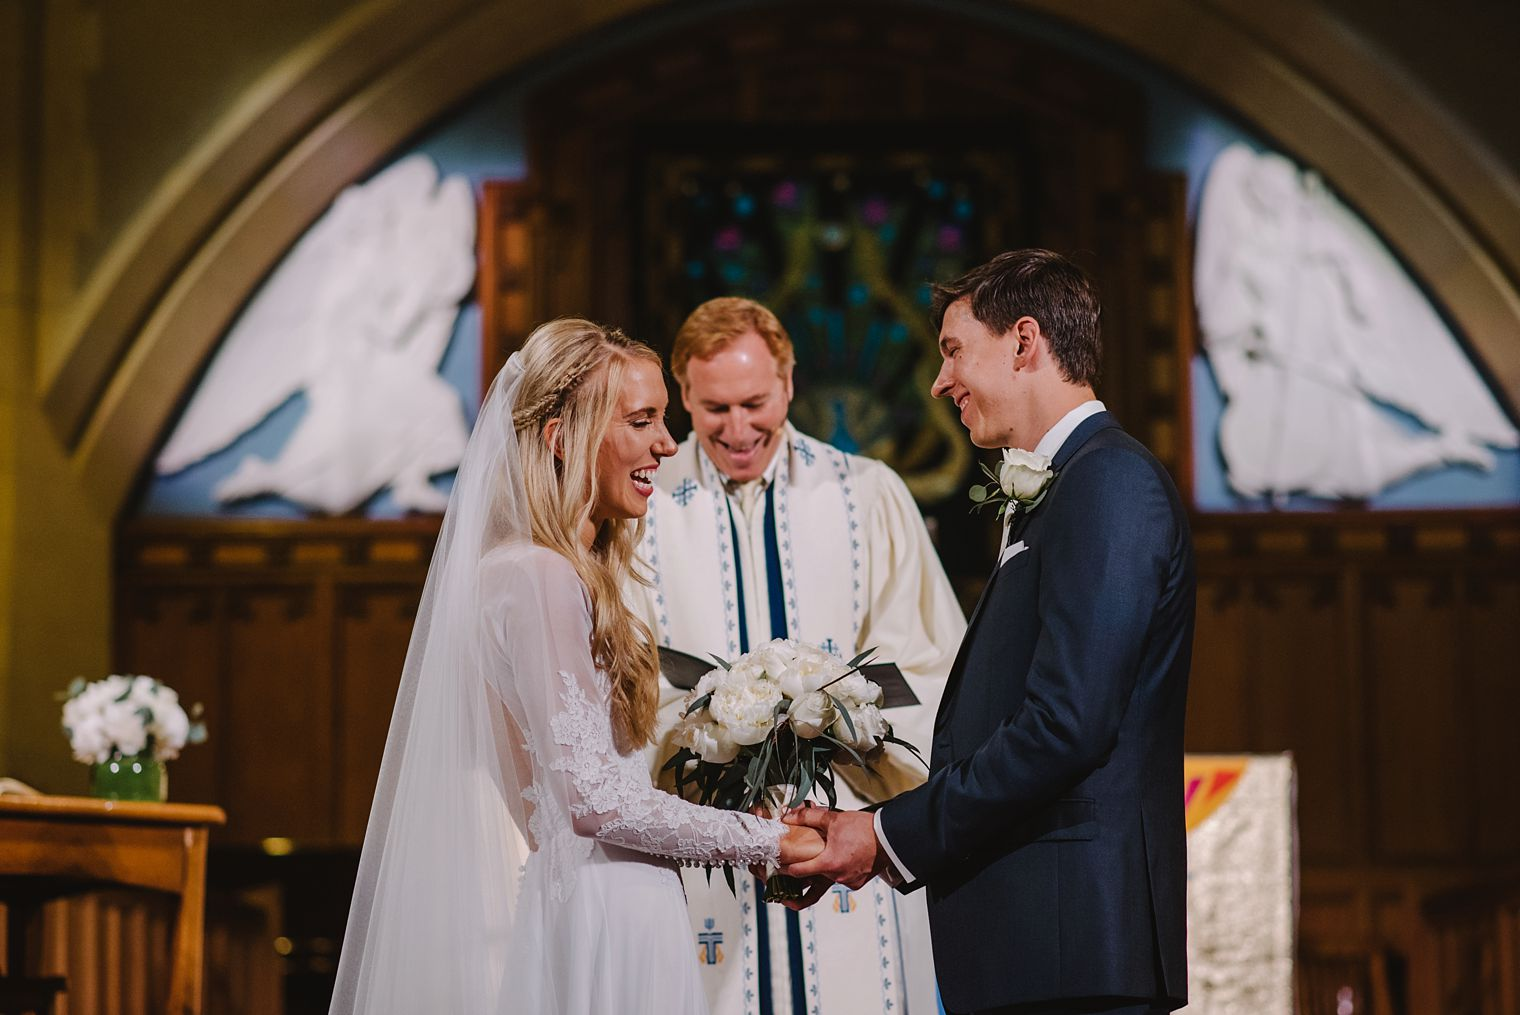 wedding at st andrews wesley united in vancouver